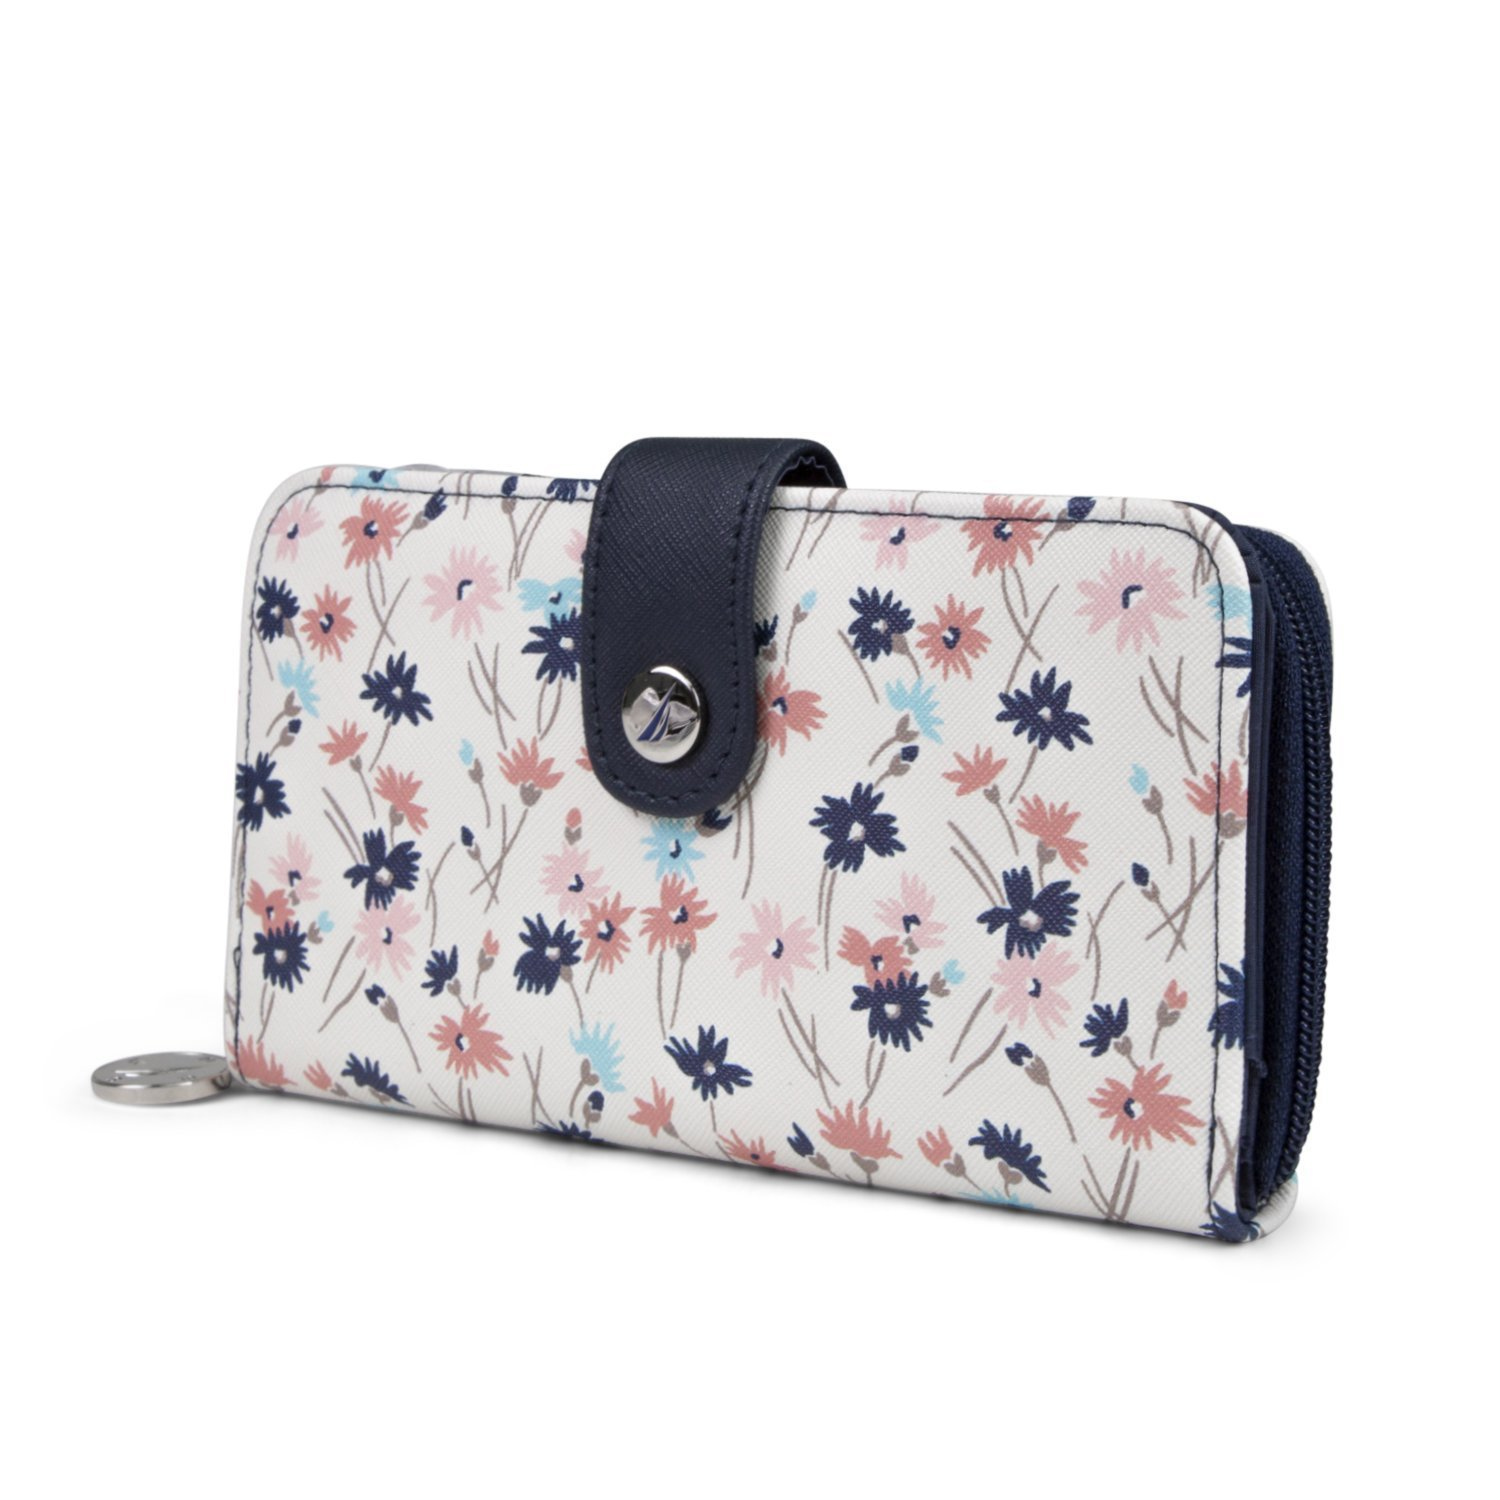 Nautica Be Shore Womens Wallet RFID Blocking Zip Around Clutch (Ditzy Floral)